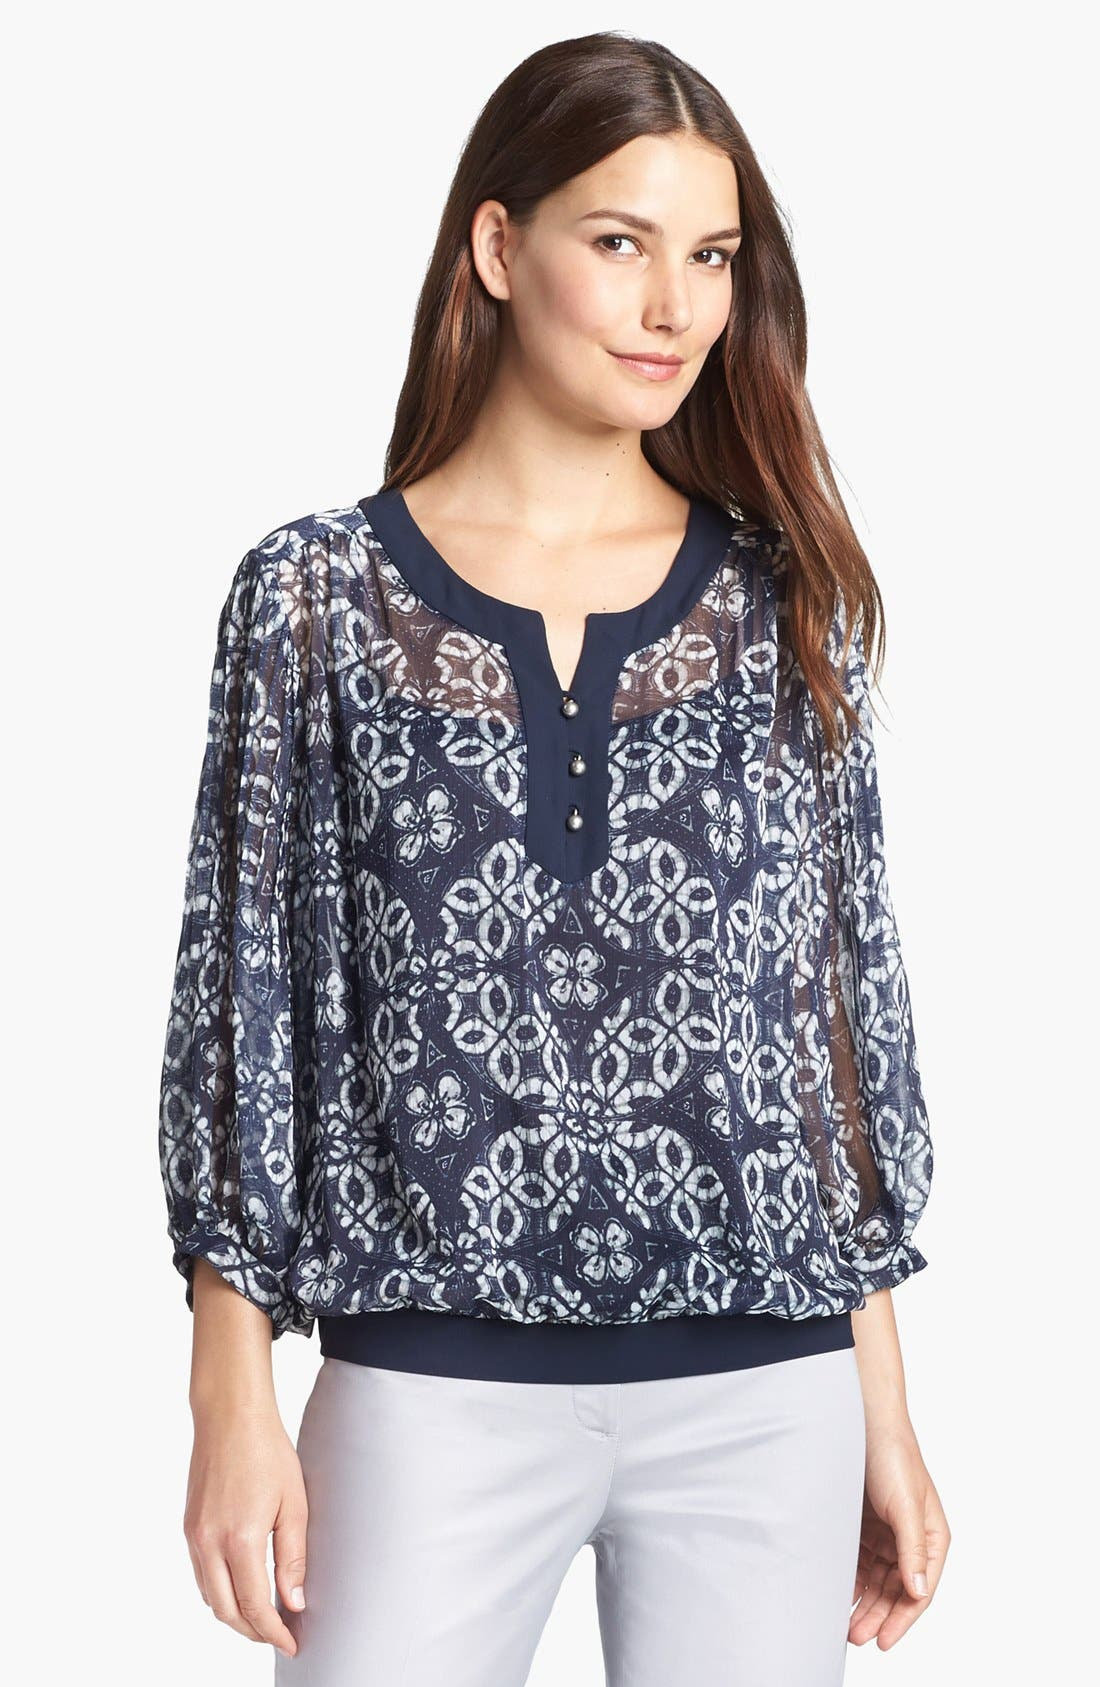 Main Image - Adrianna Papell Crinkled Chiffon Blouse with Camisole